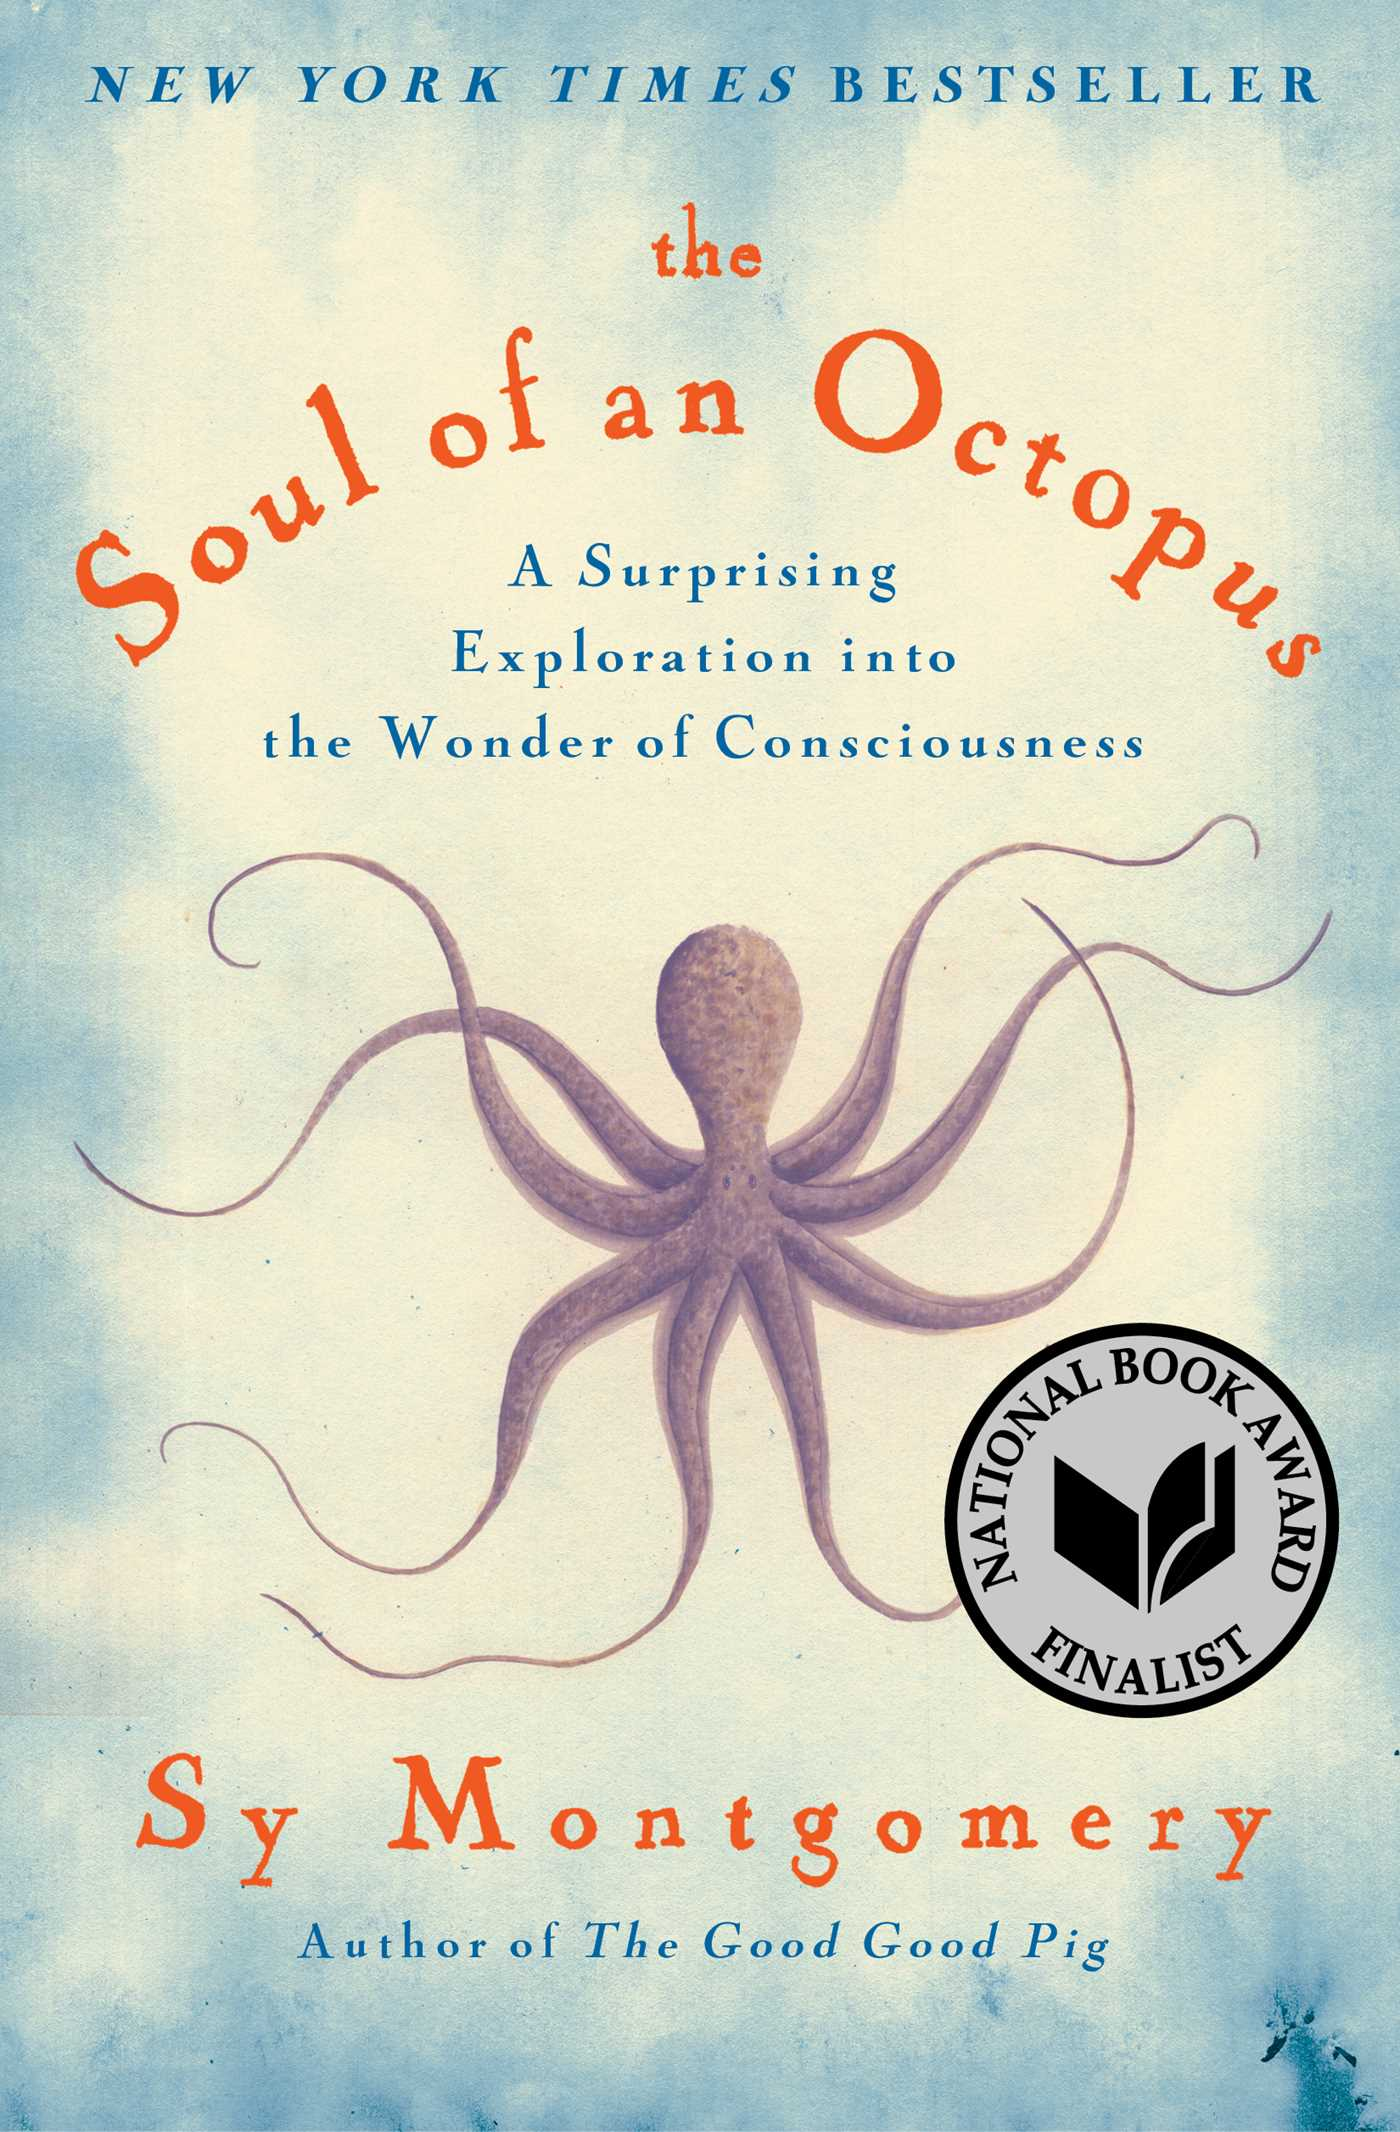 The soul of an octopus 9781451697728 hr